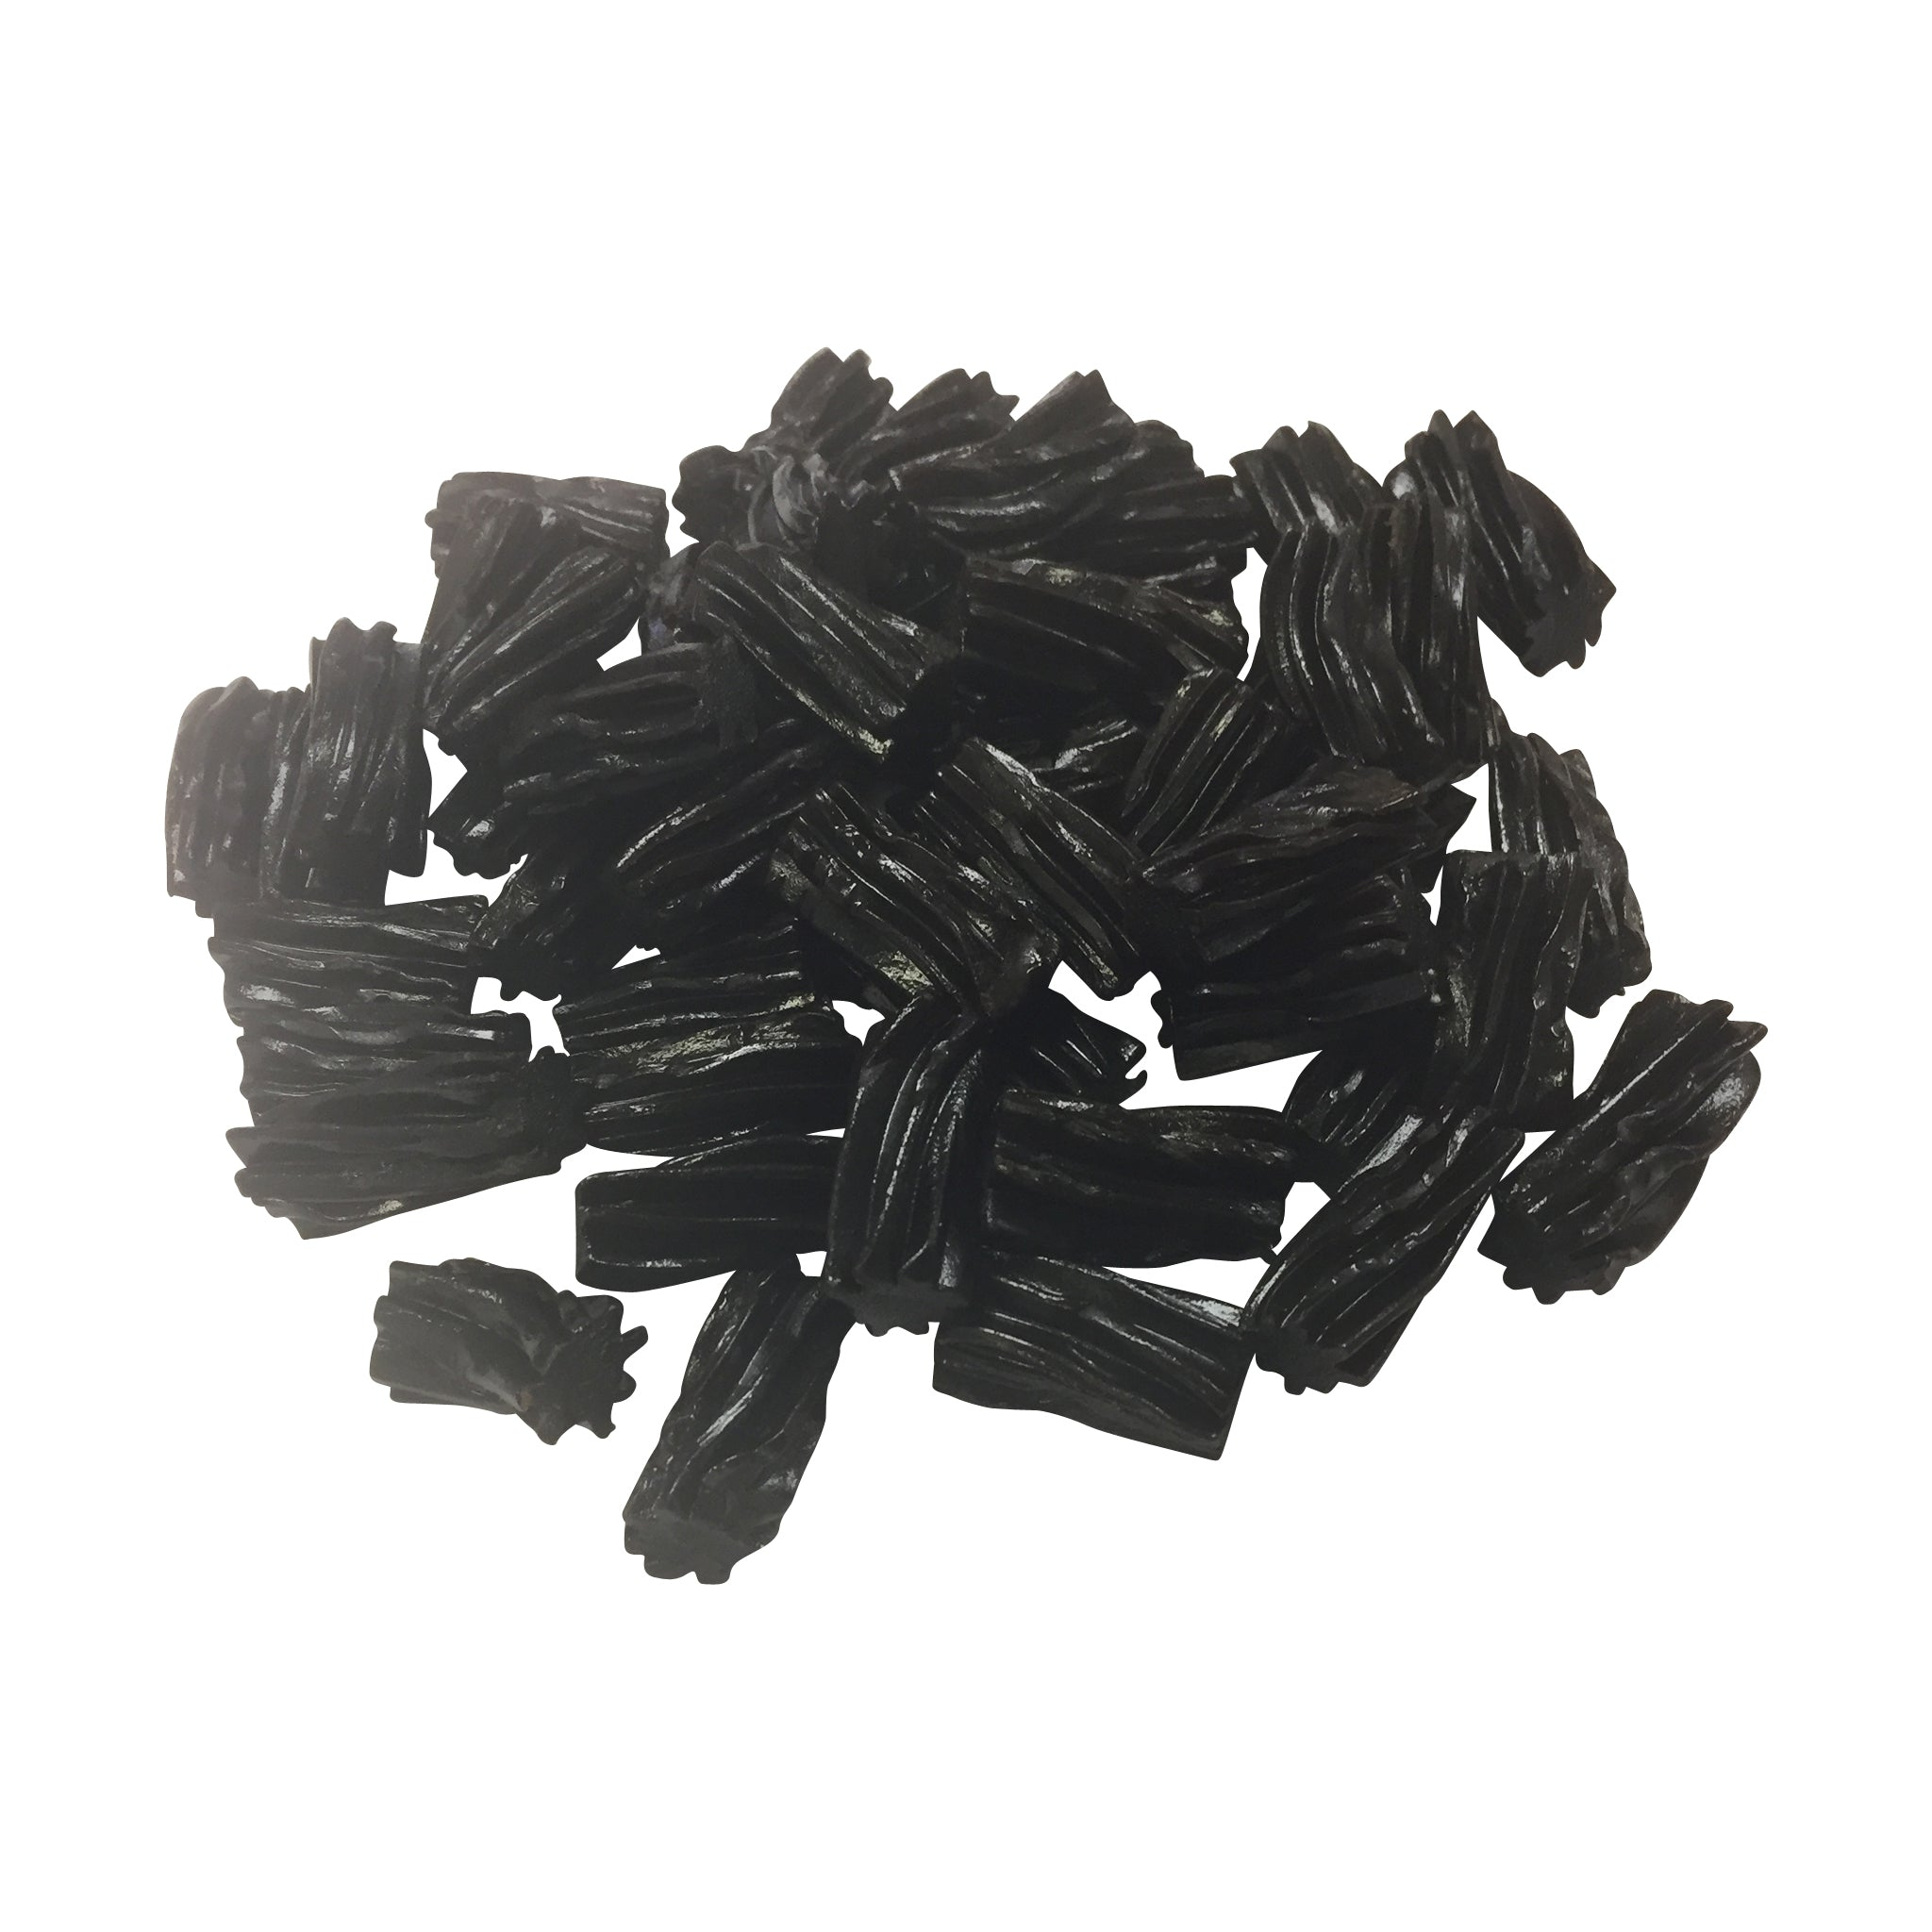 Kookaburra Black Licorice (Australia)